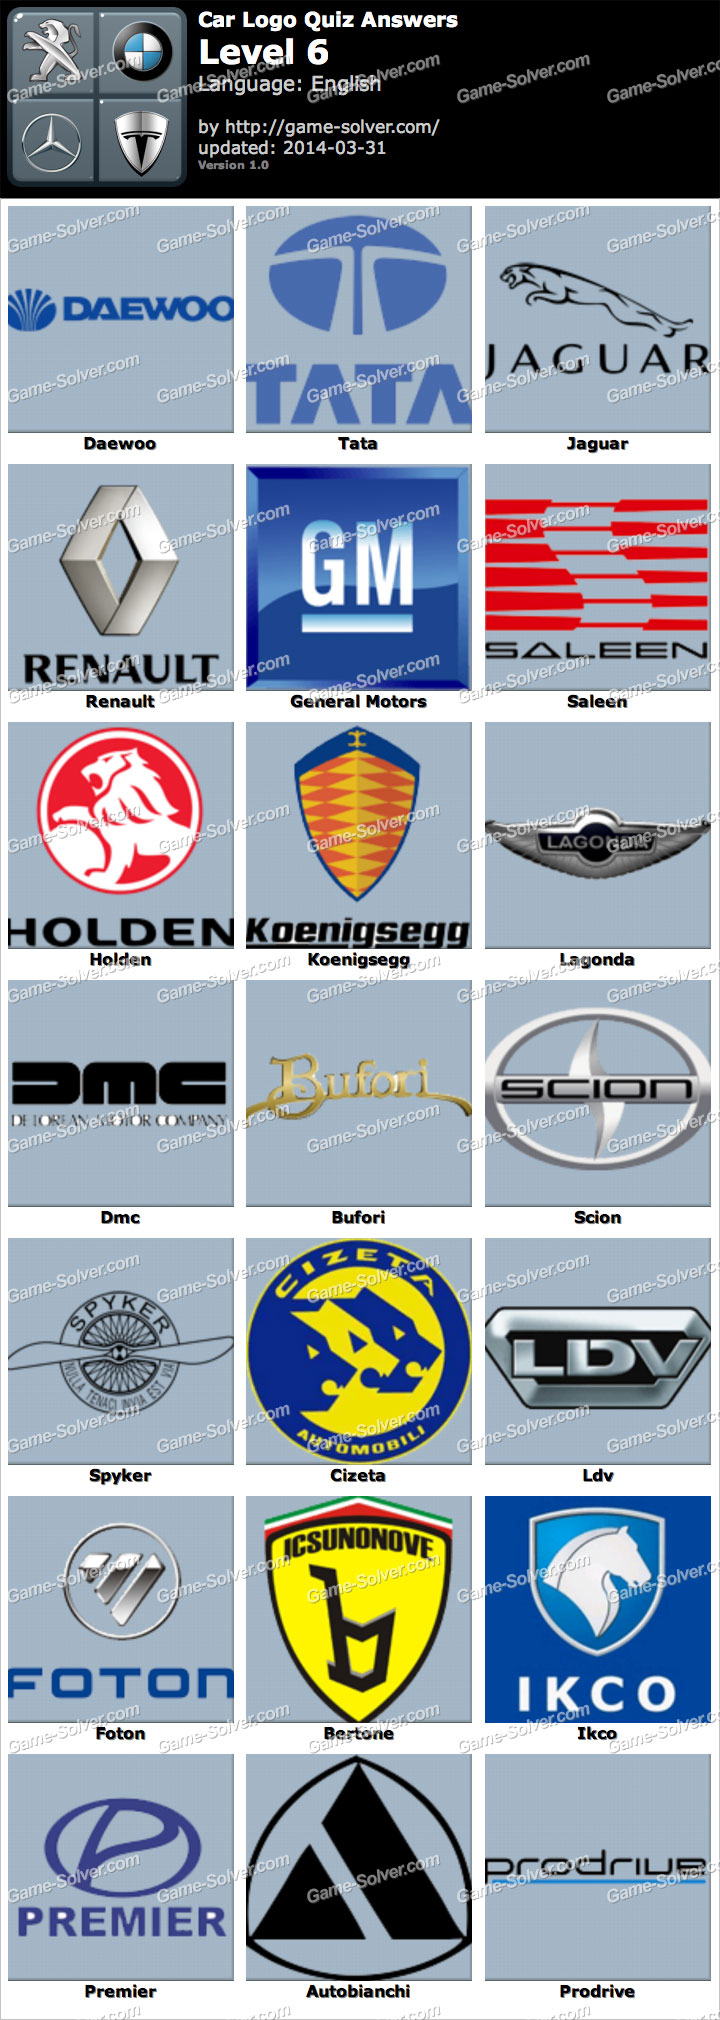 Car Logo Quiz Level 6 - Game Solver Cars Logos Quiz Answers